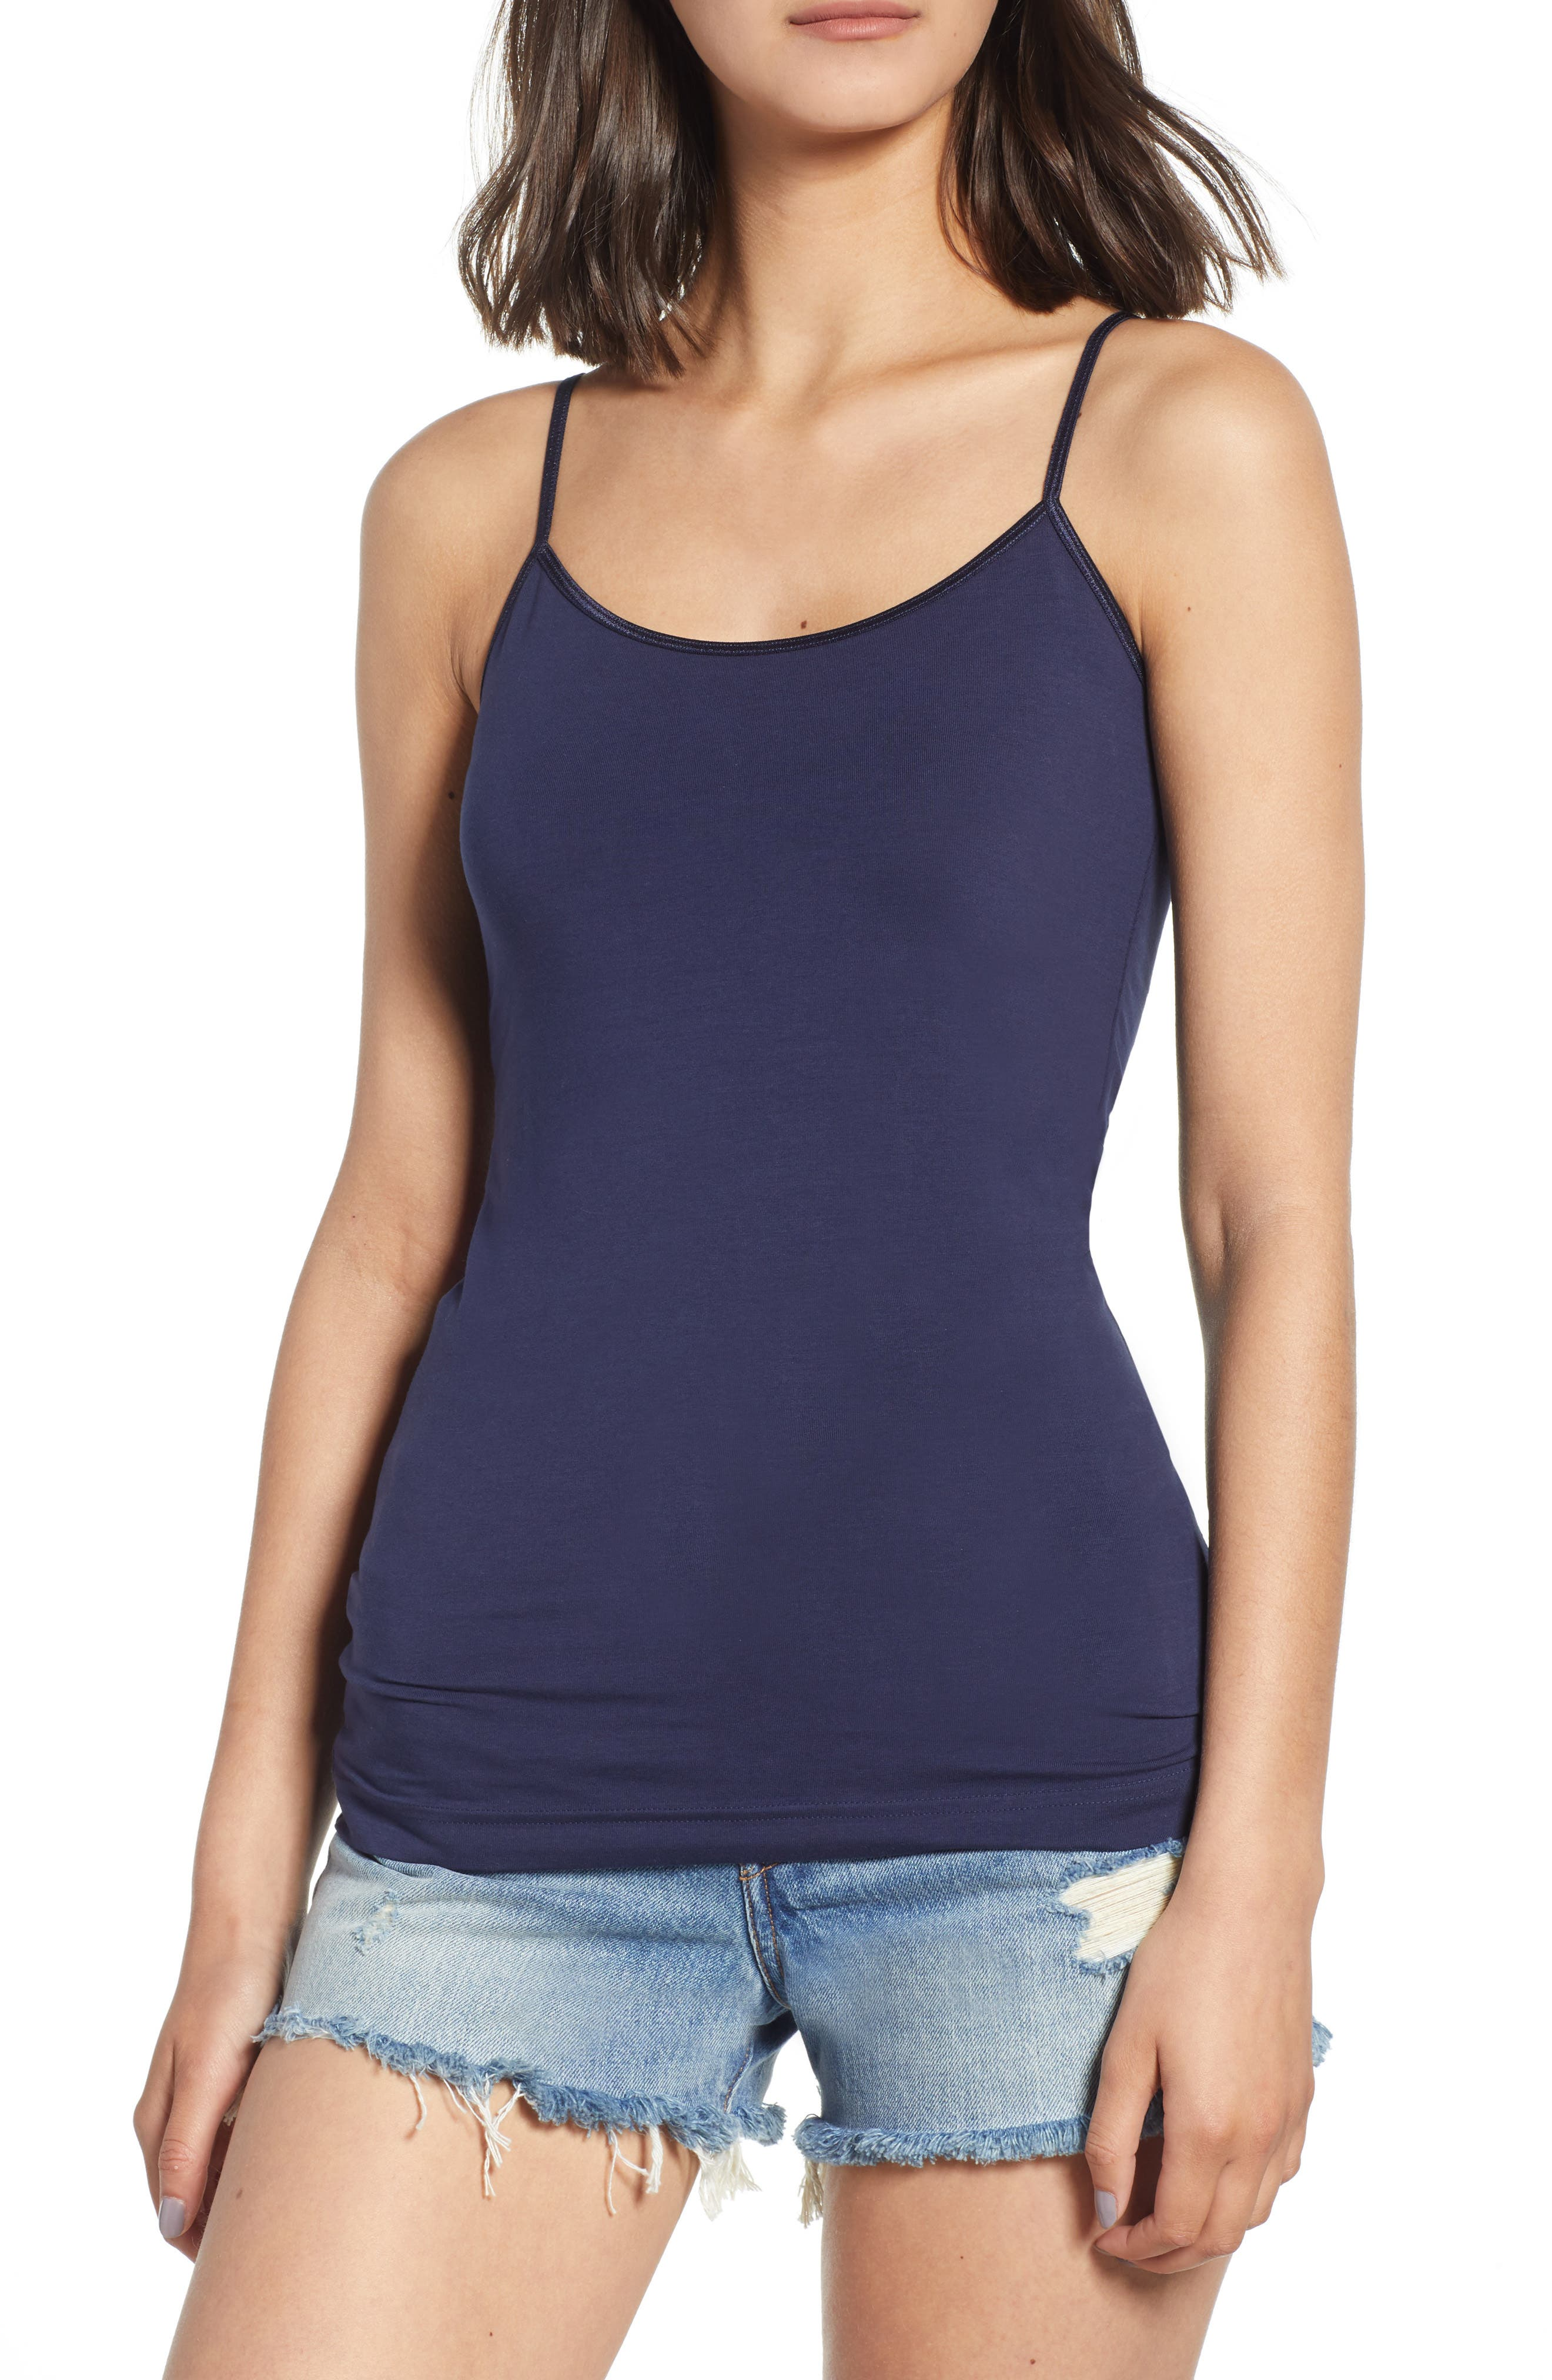 Stretch Camisole,                             Main thumbnail 1, color,                             Navy- Peacoat